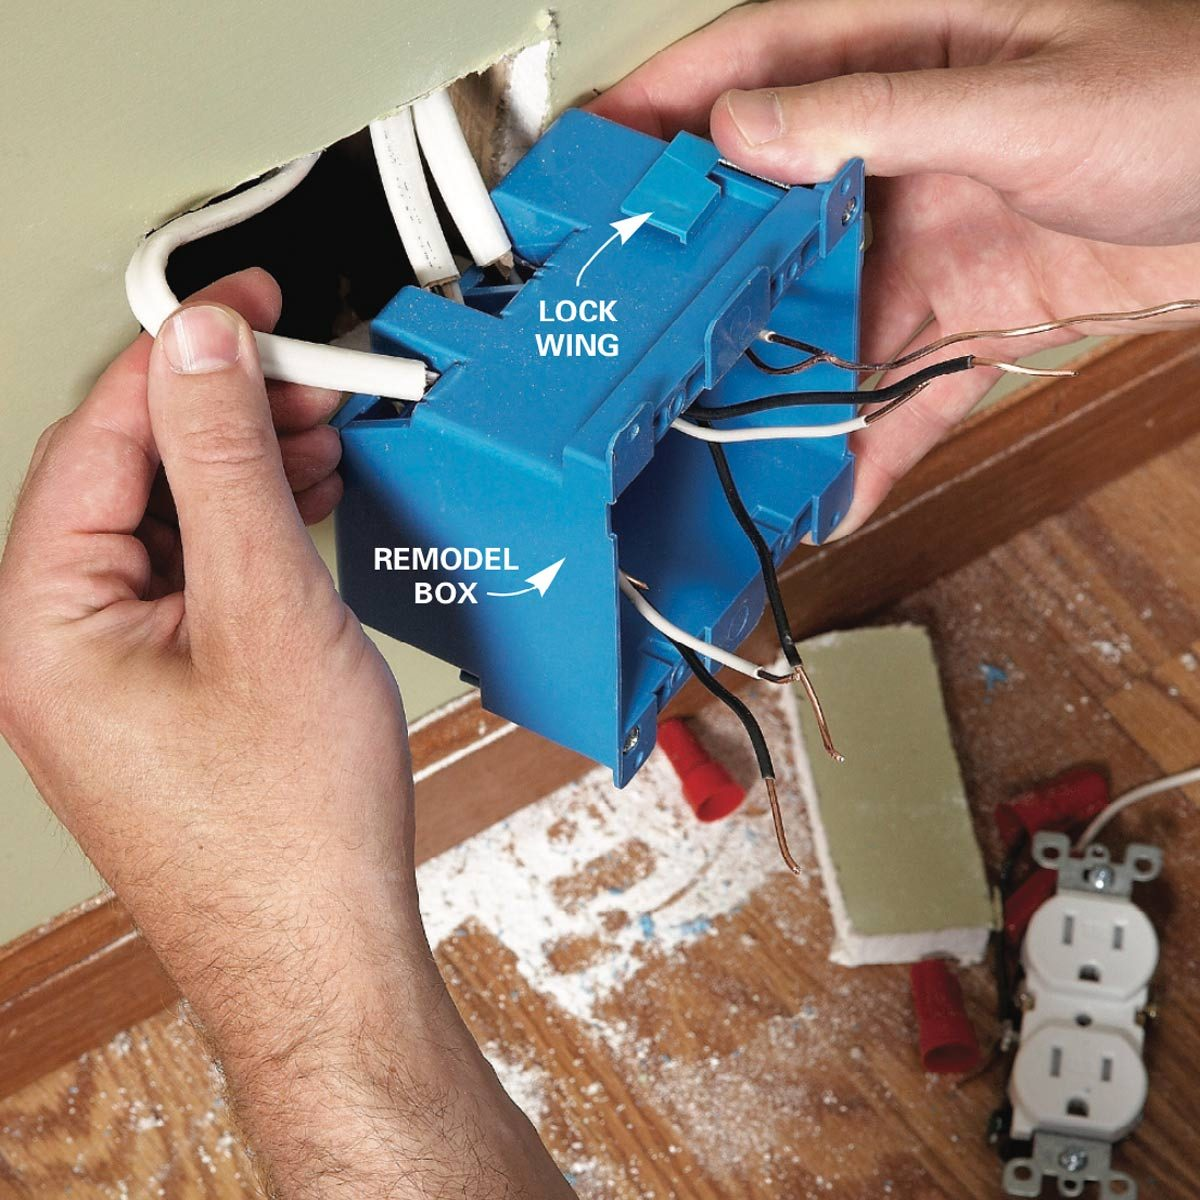 What You Should Do With Crowded Electrical Boxes The Family Handyman Wiring Box For Ceiling Fan